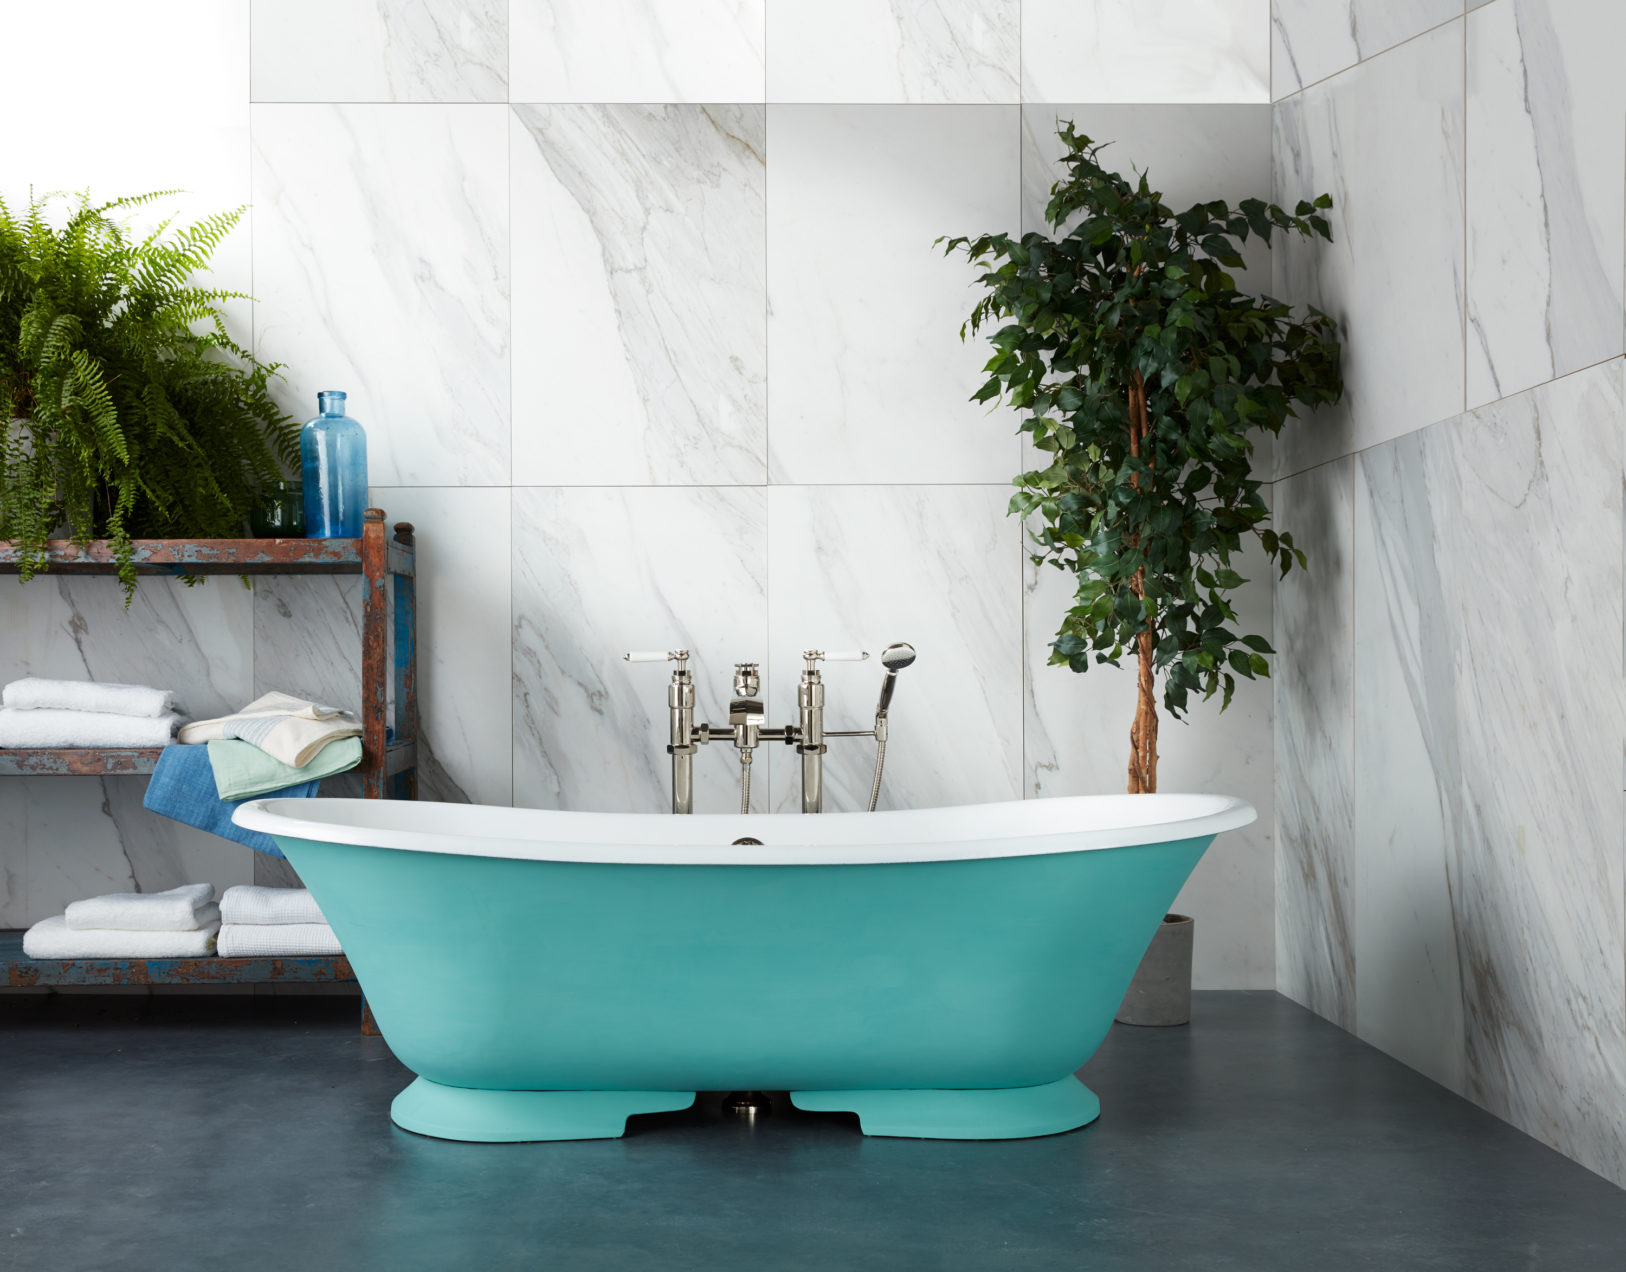 The Serpentine Cast Iron Skirted Bath Tub